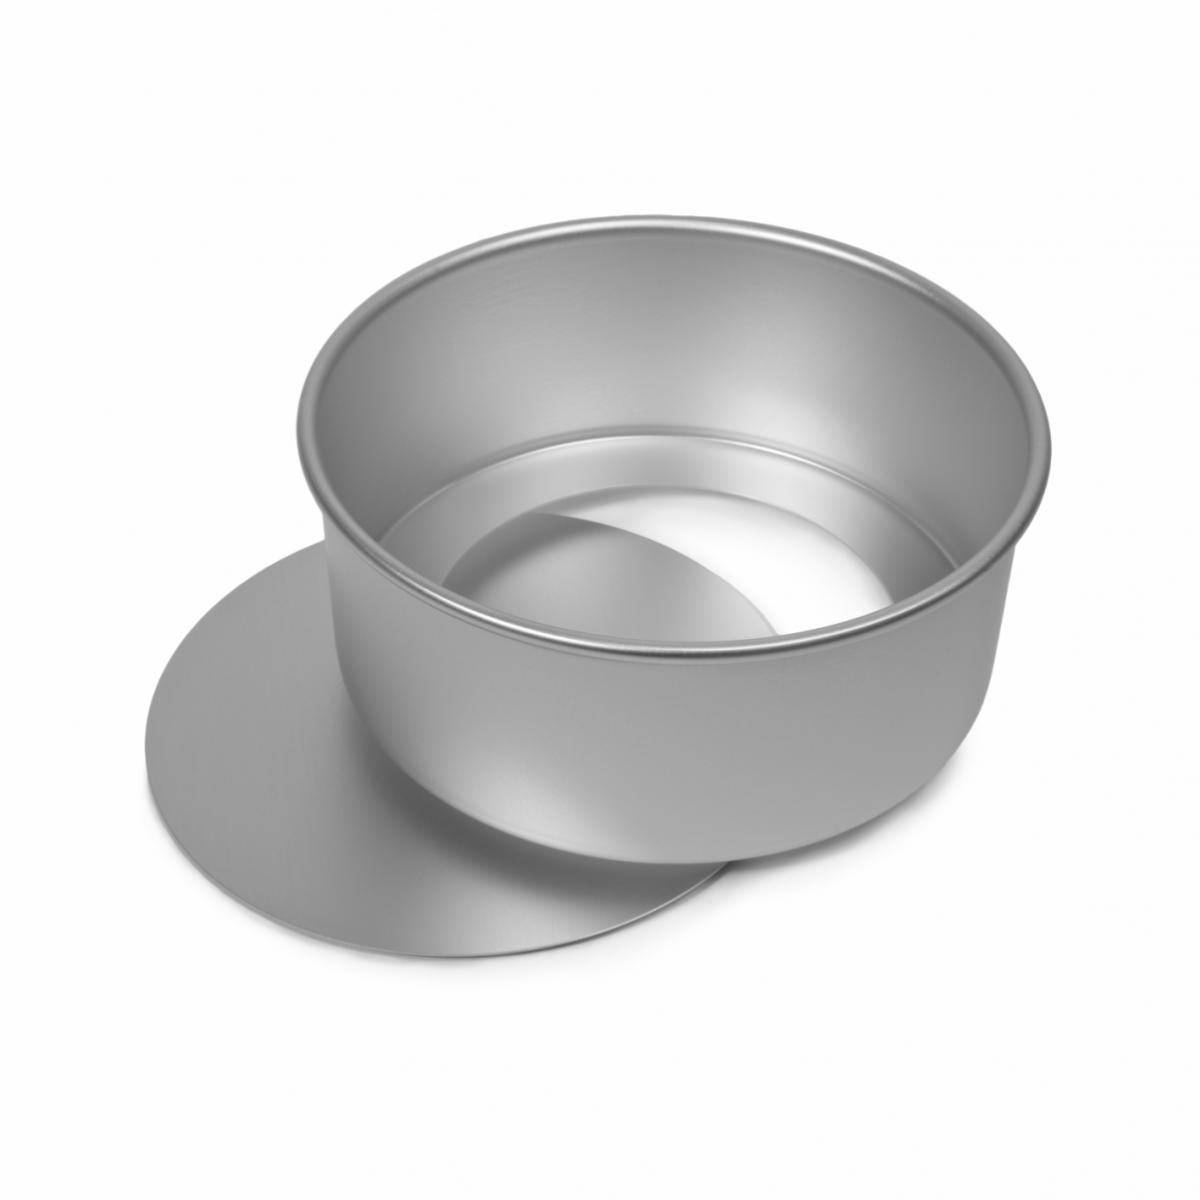 Equipment 18cm cake tin